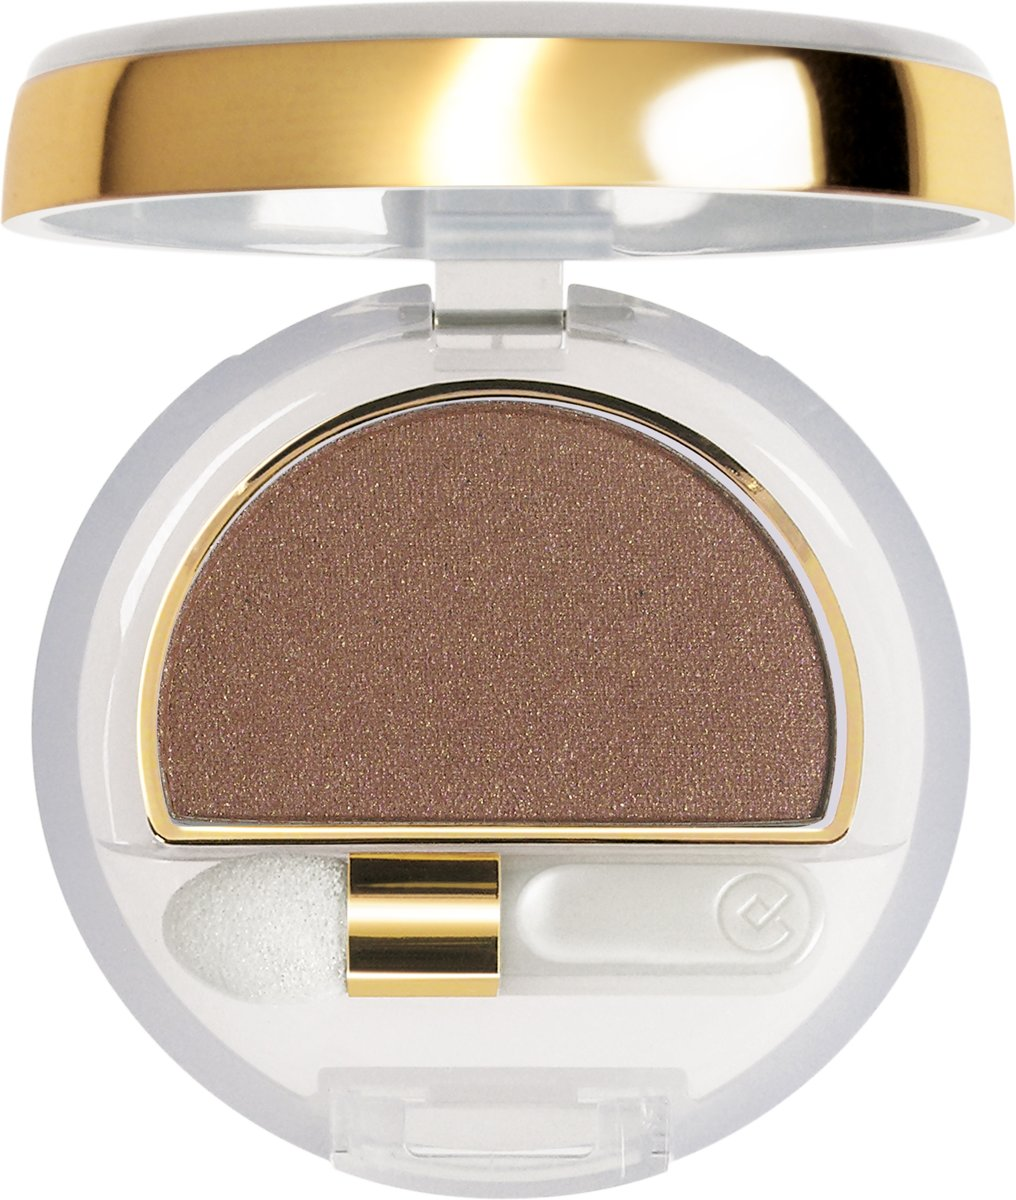 Collistar Silk Effect Eyeshadow - 21 Golden Brown- Oogschaduw